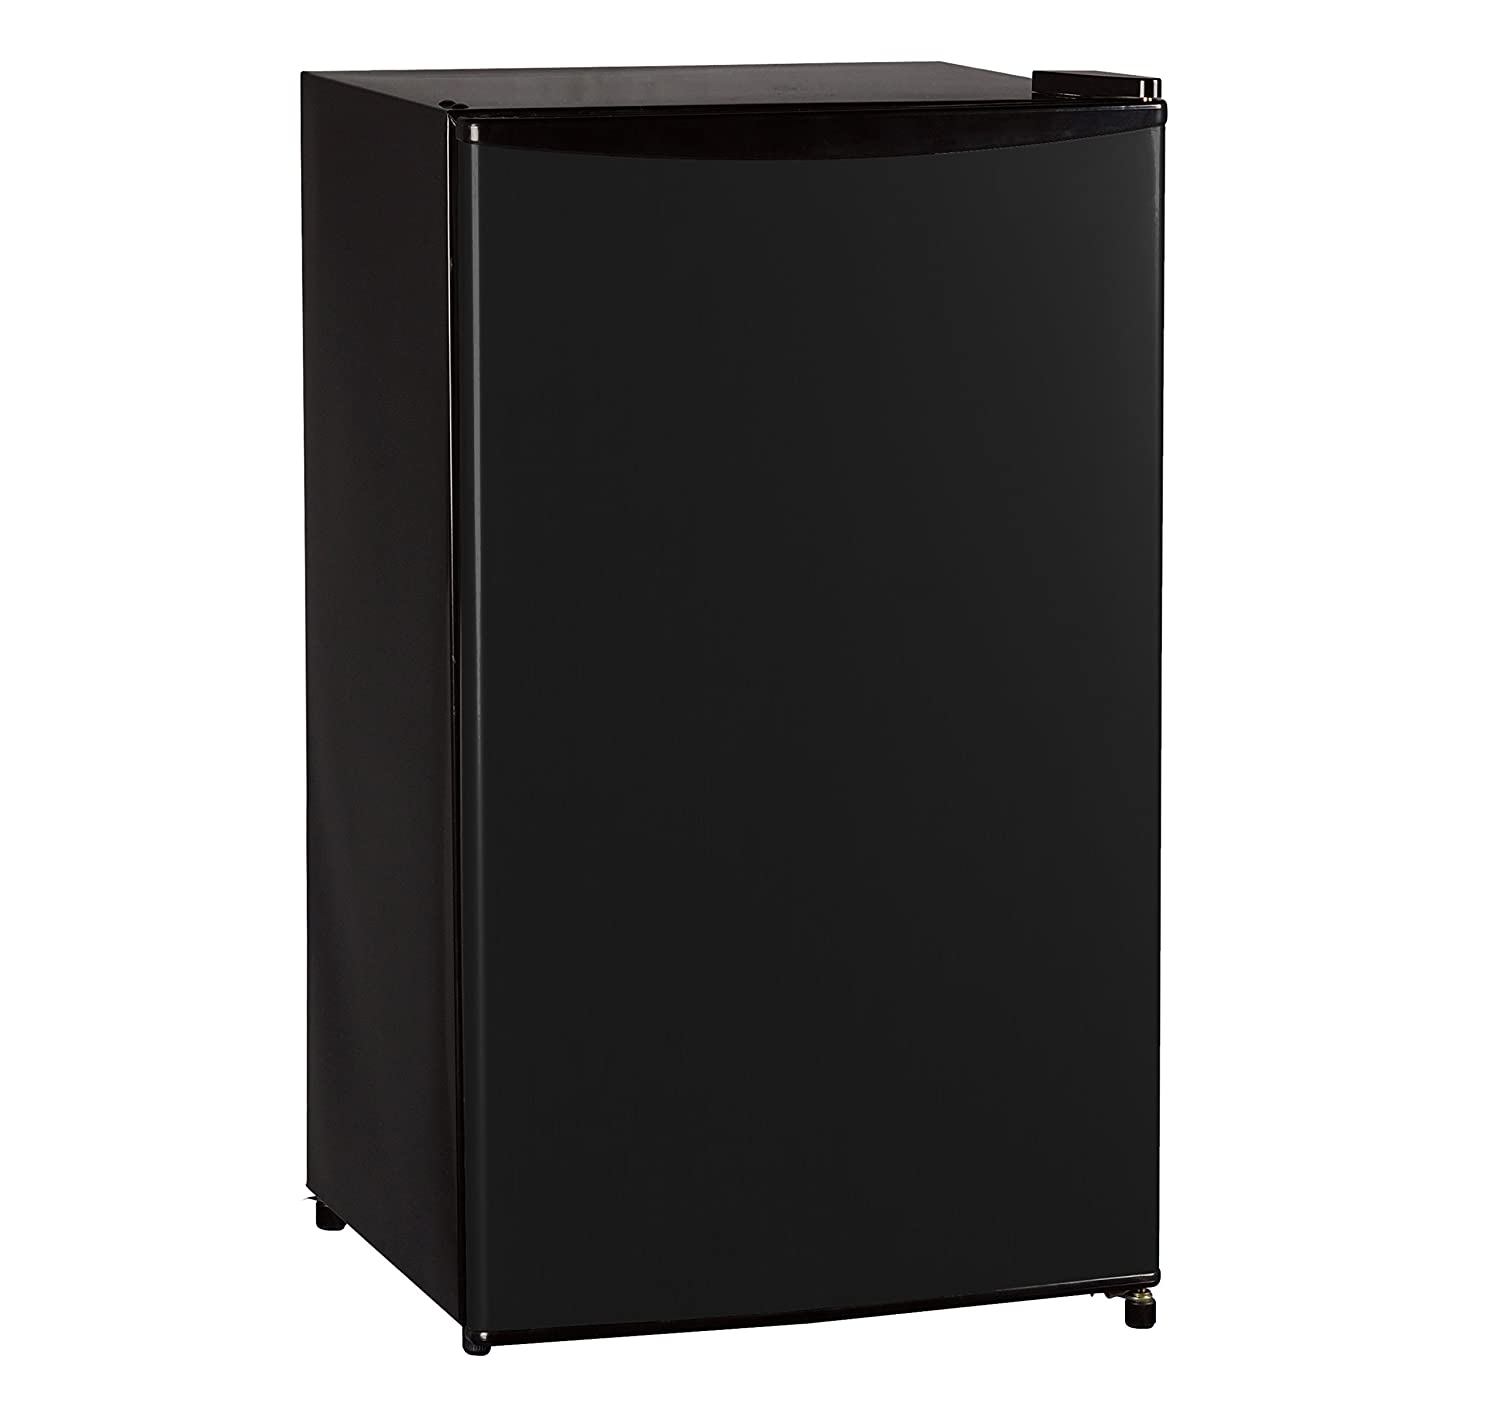 Midea WHS-121LB1 Compact Single Reversible Door Refrigerator and Freezer, 3.3 Cubic Feet, Black